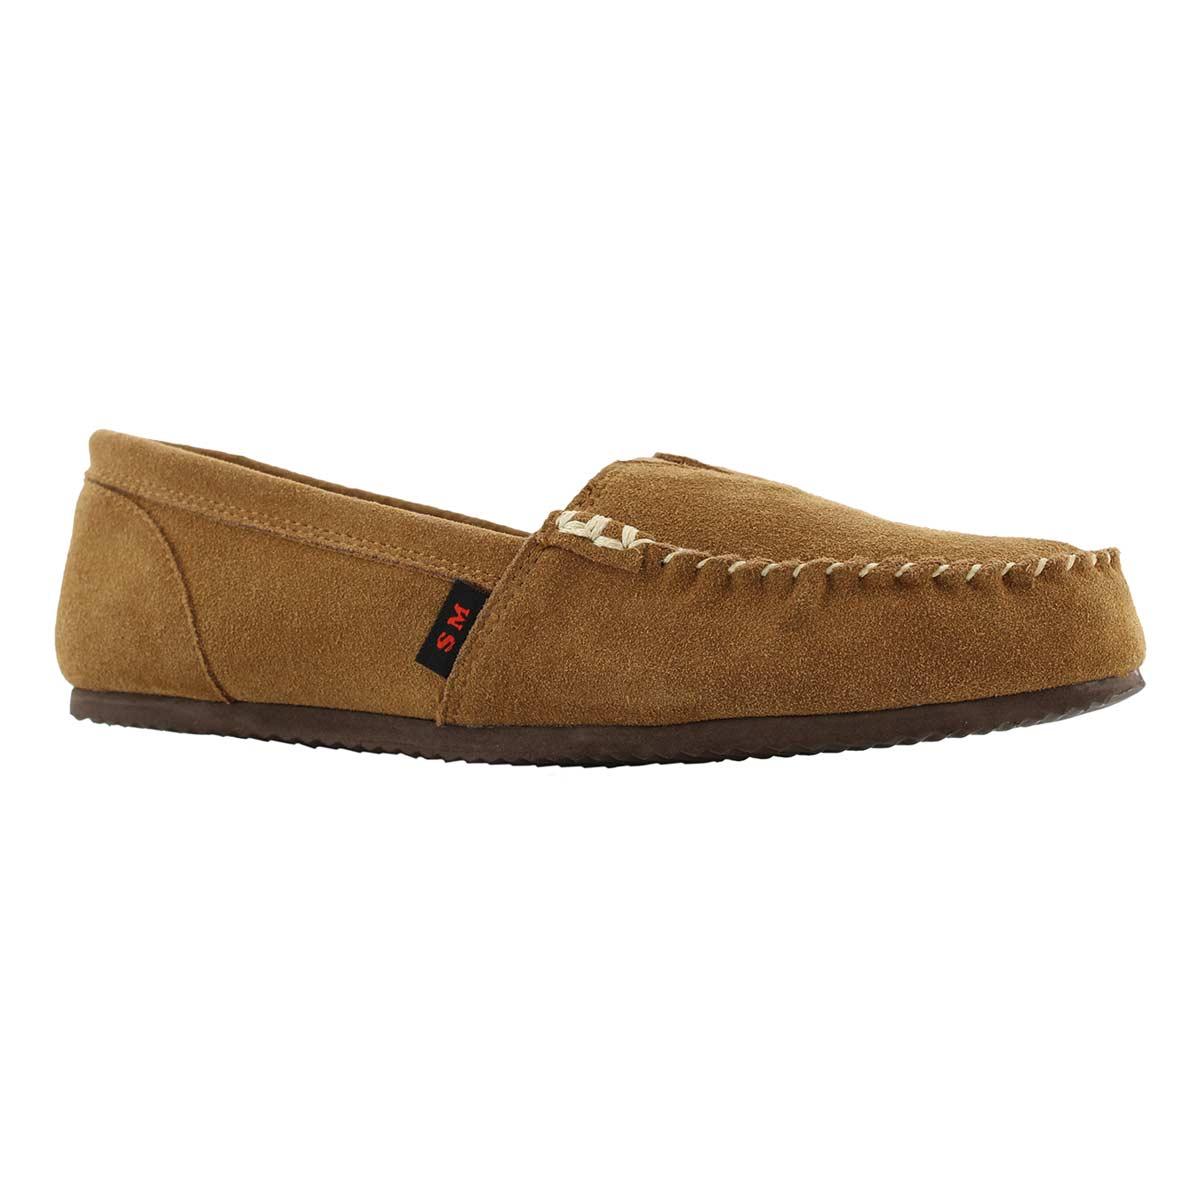 moccasins from softmoc